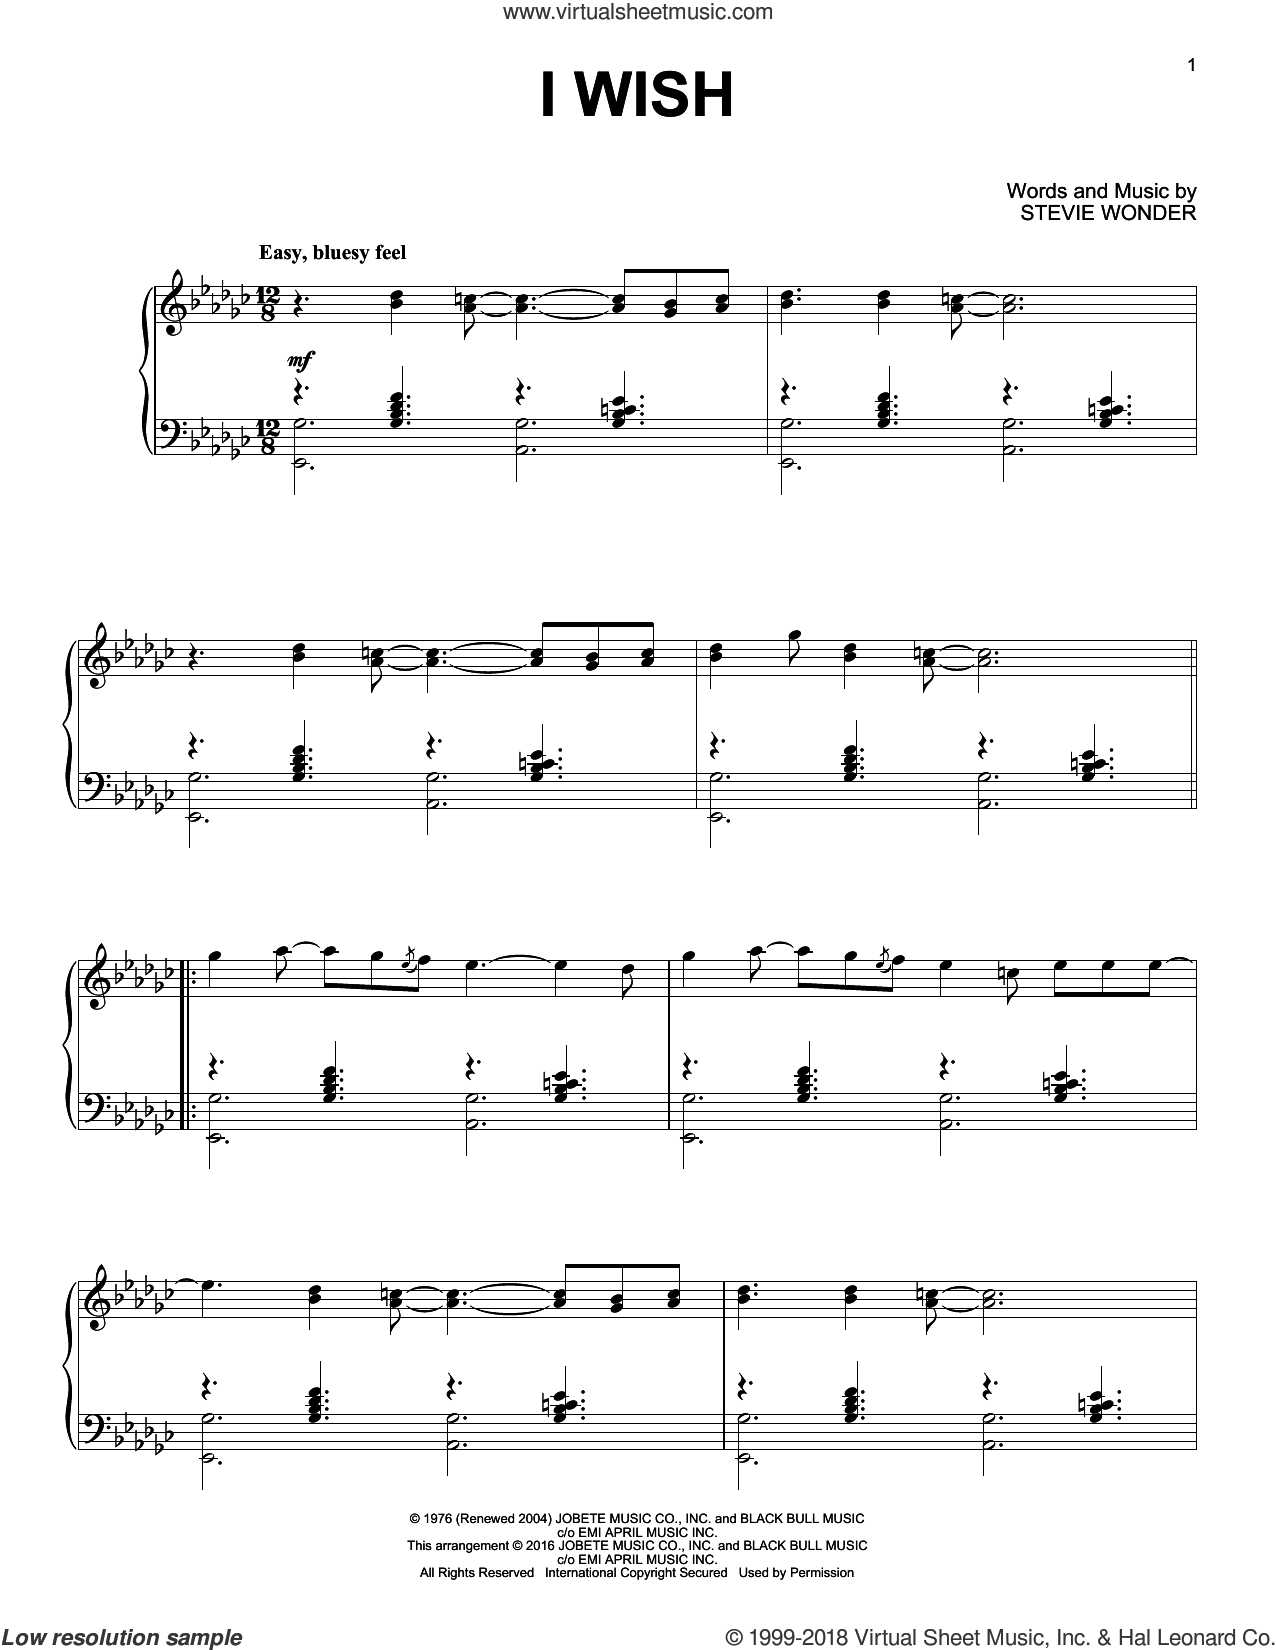 I Wish sheet music for piano solo by Stevie Wonder, intermediate skill level